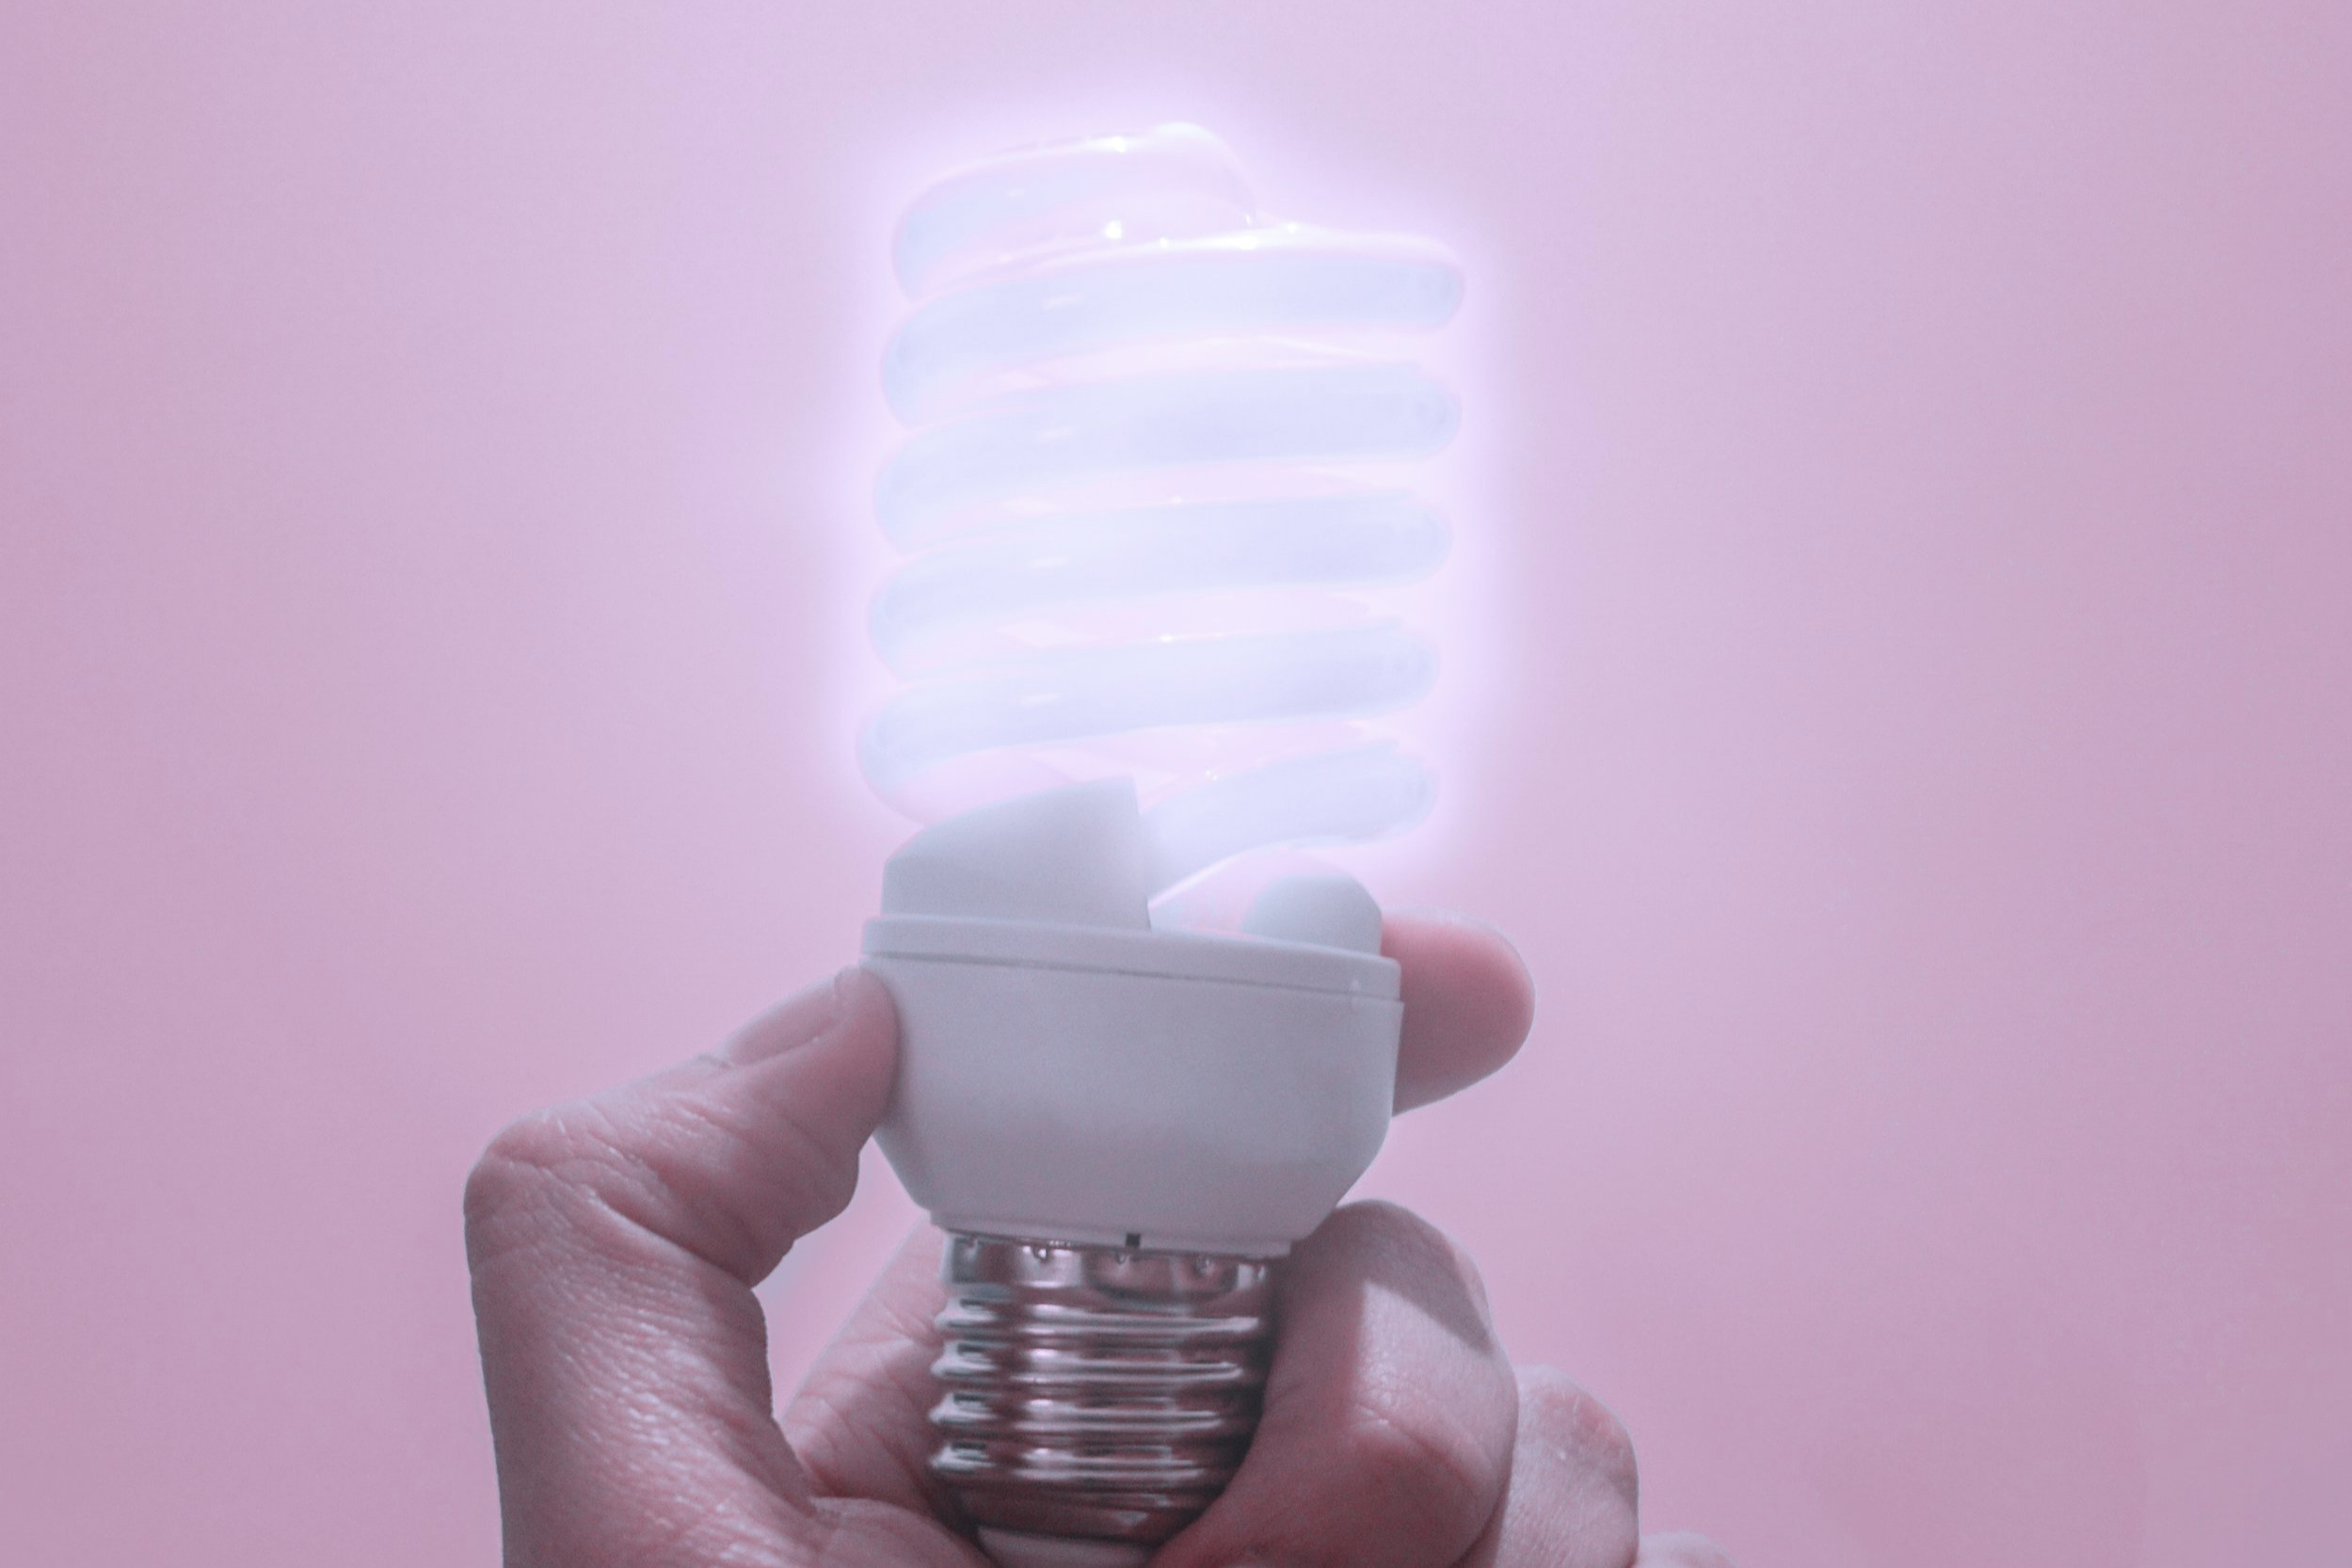 Eco-friendly lightbulbs help us conserve energy in our offices -